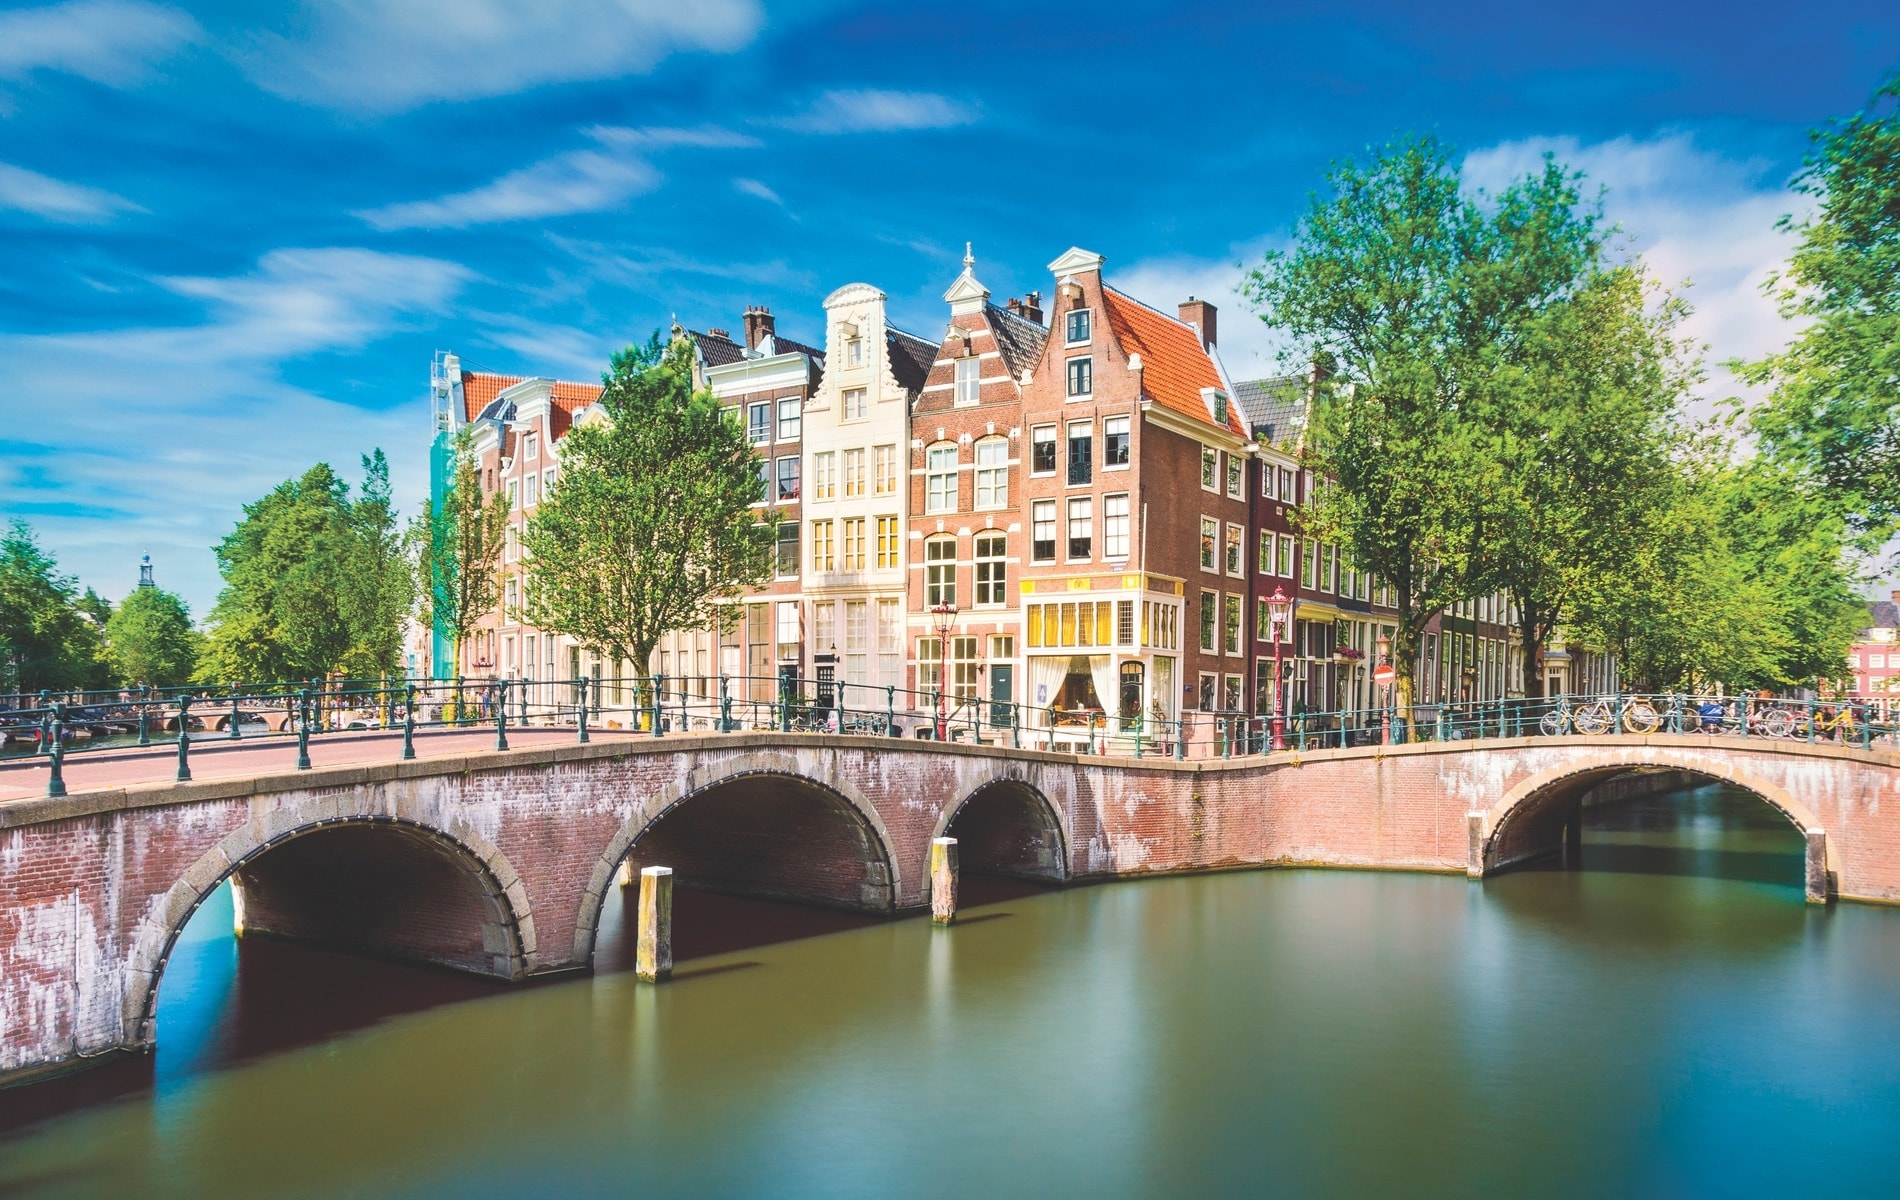 Amsterdam was one of three cities on writer Sarah Freeman's trip to discover the history of famous Dutch painter Rembrandt van Rijn.